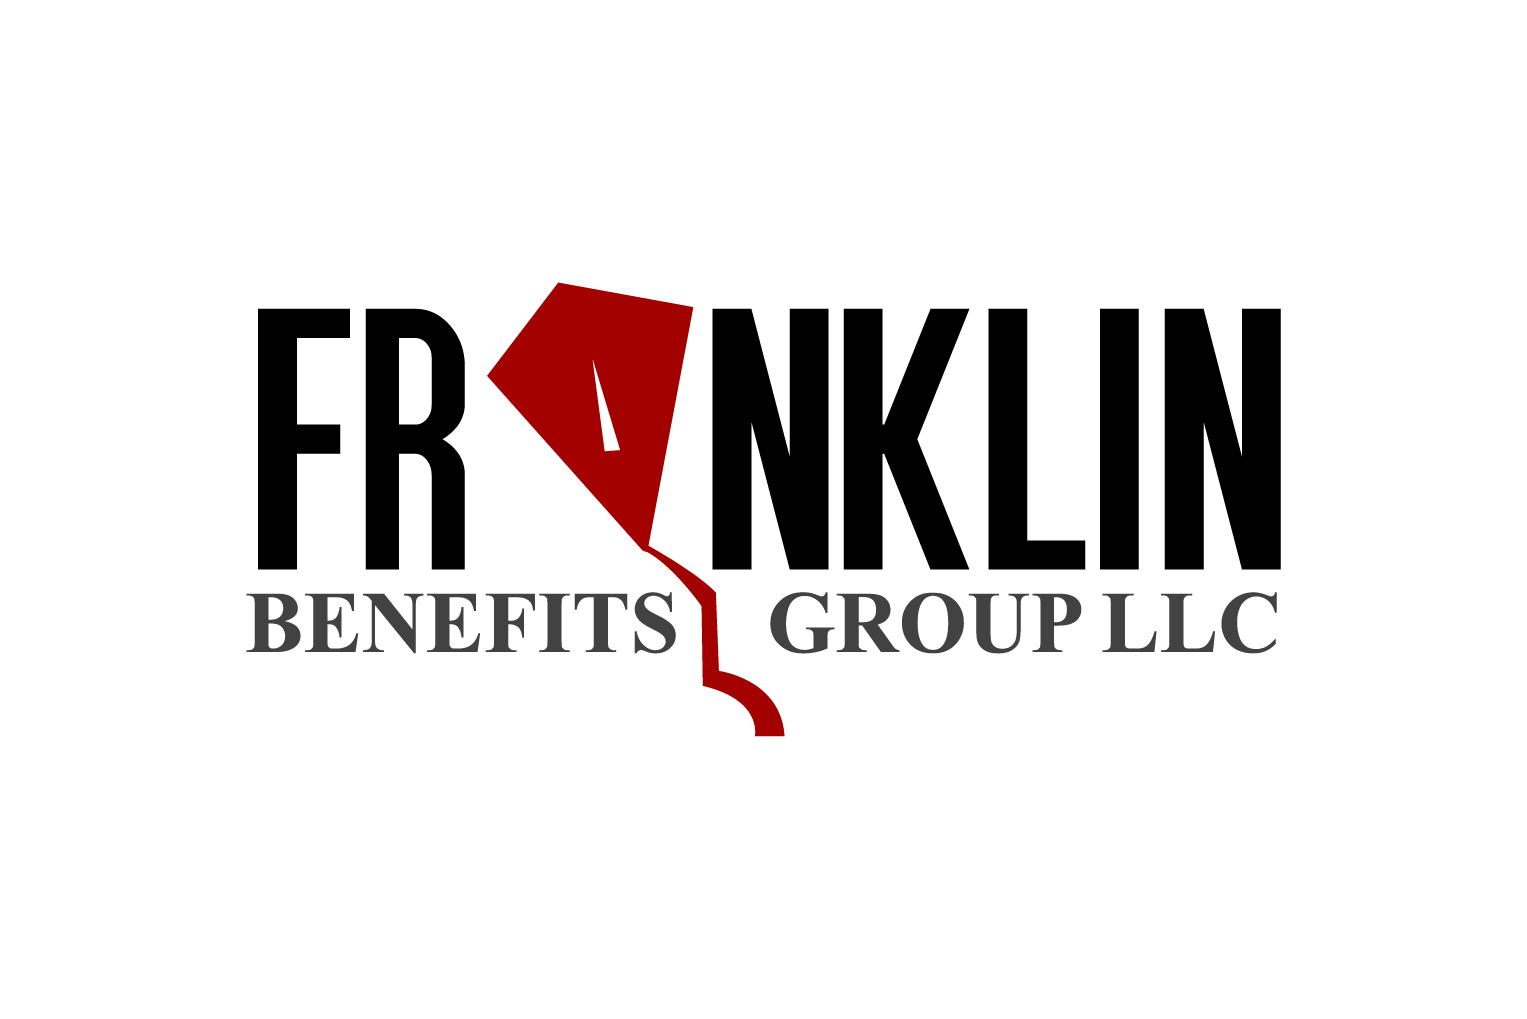 Franklin Benefits Group, LLC - The employee benefits broker and group health insurance advisor in Doylestown